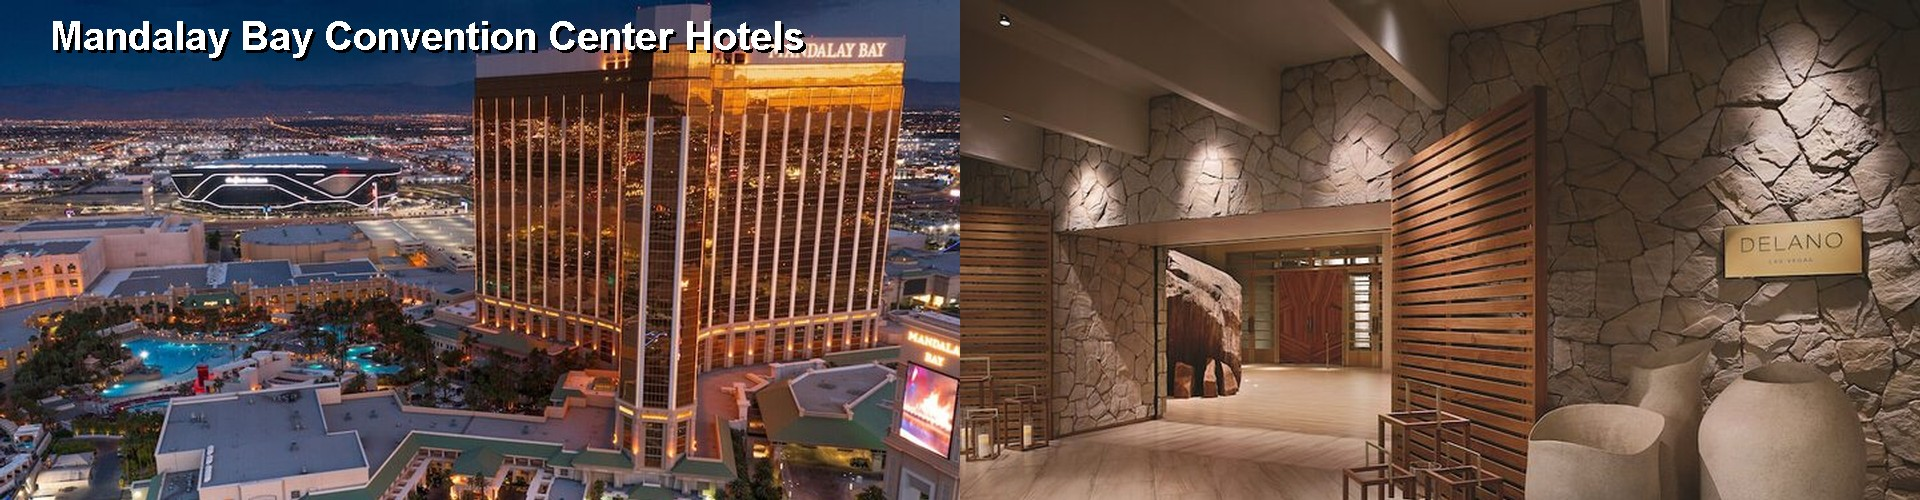 5 Best Hotels near Mandalay Bay Convention Center